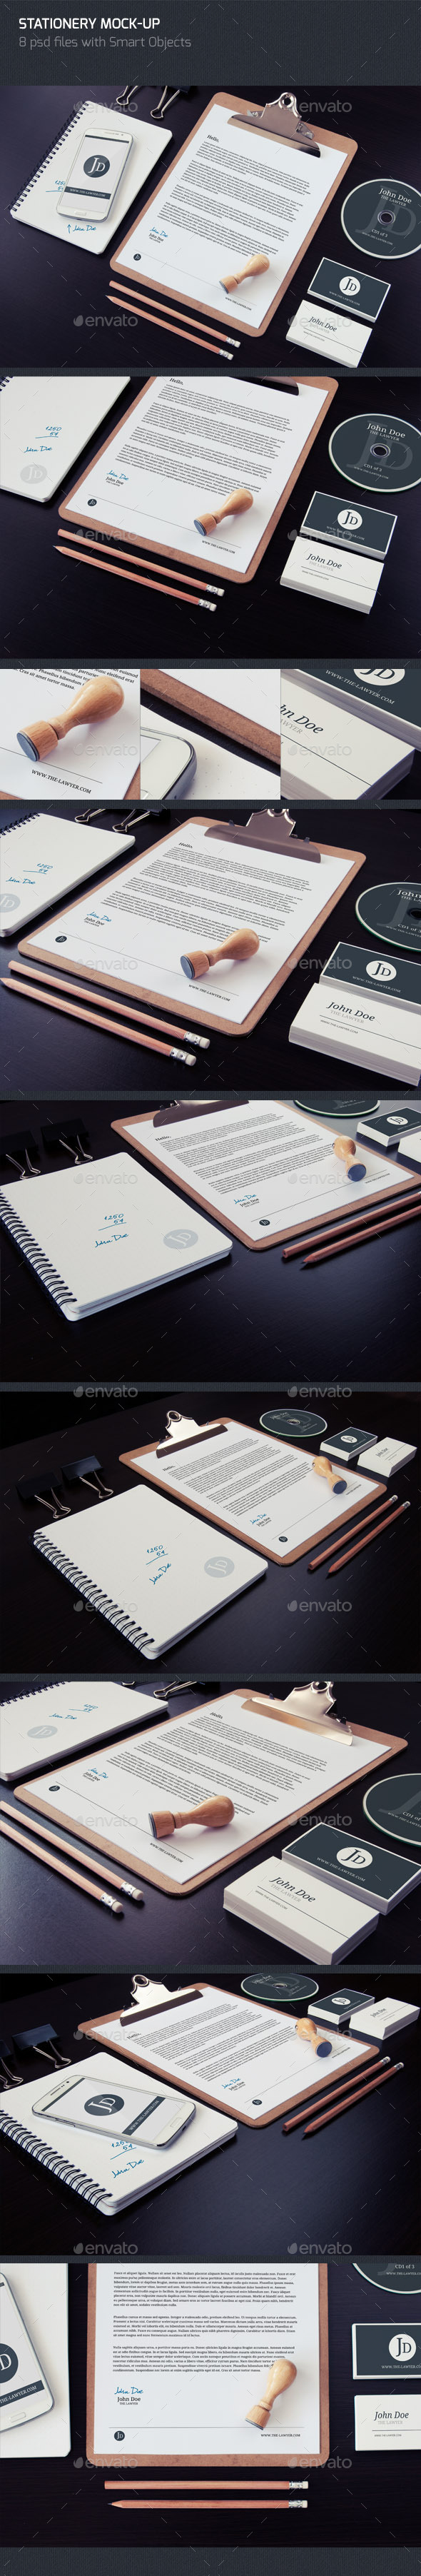 Stationery Mock-up (Stationery)